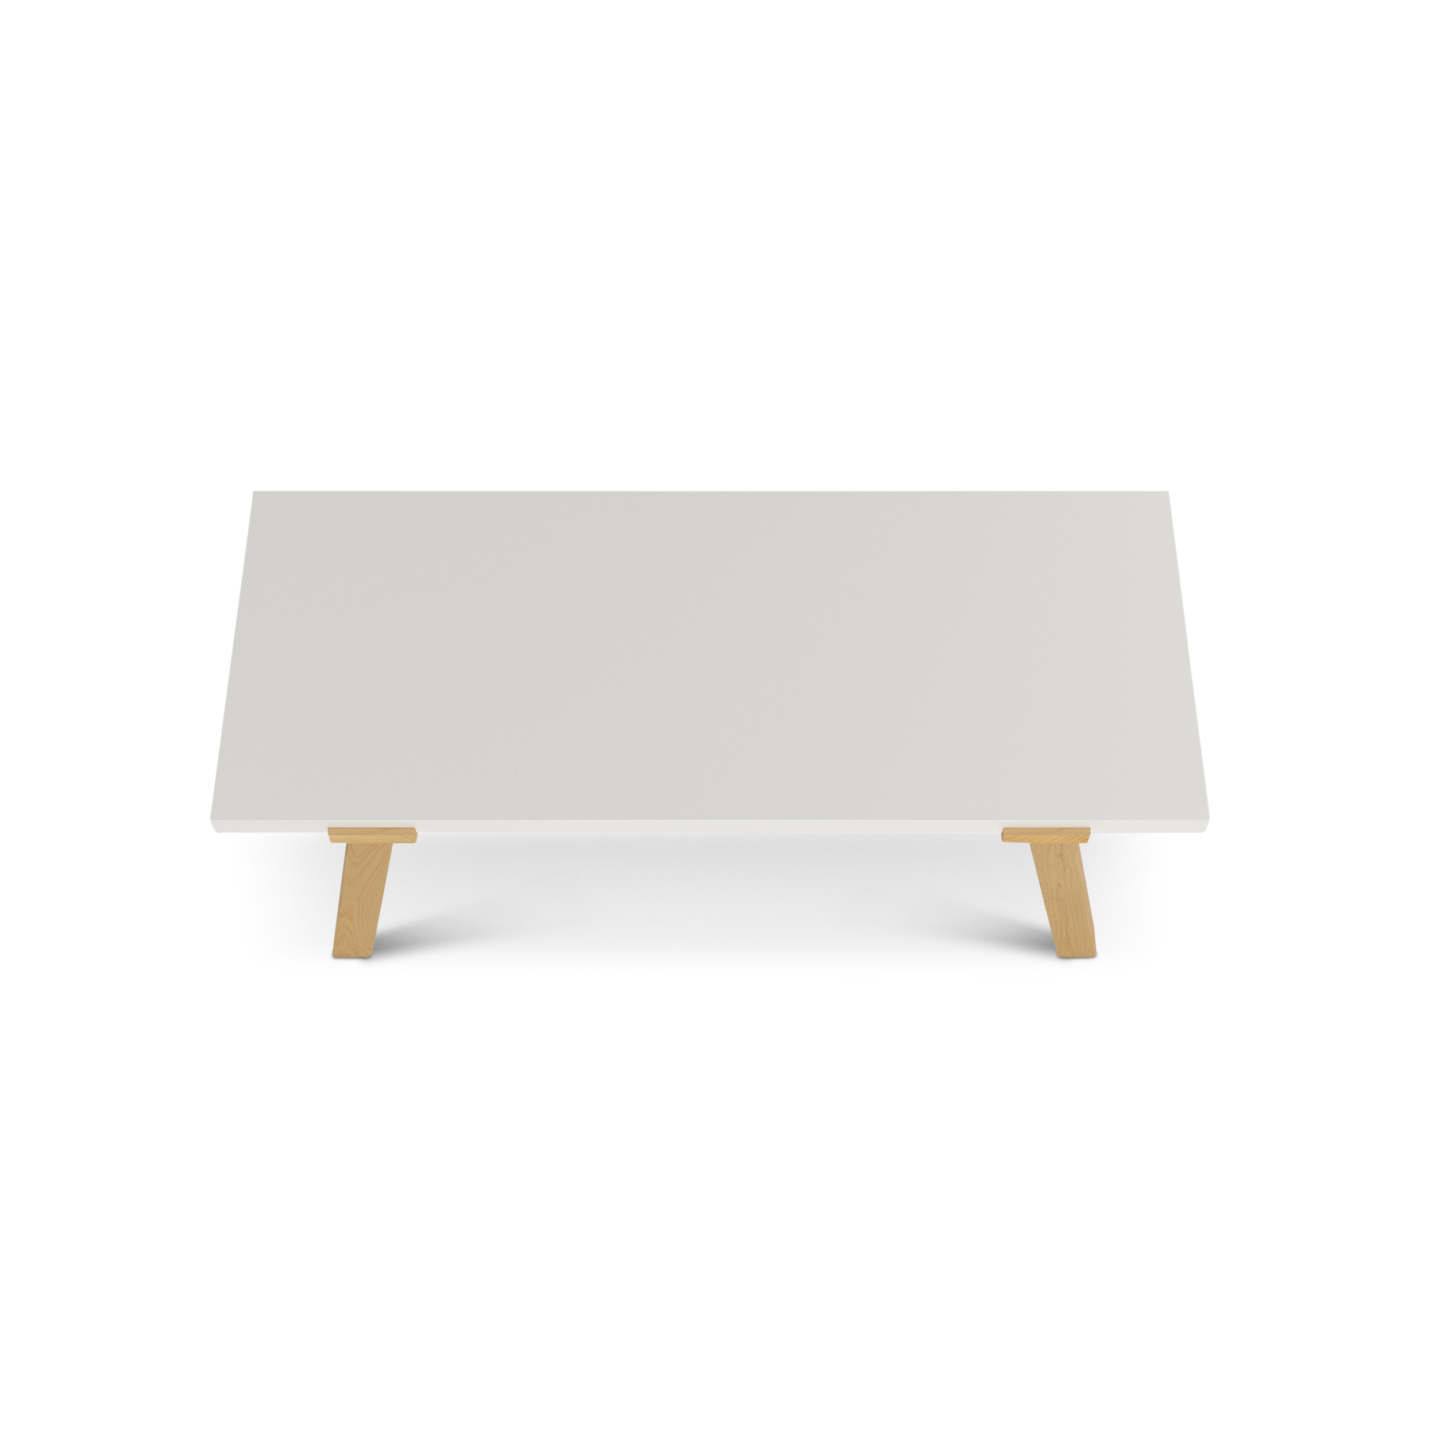 A desk with a thick white maple desk surface